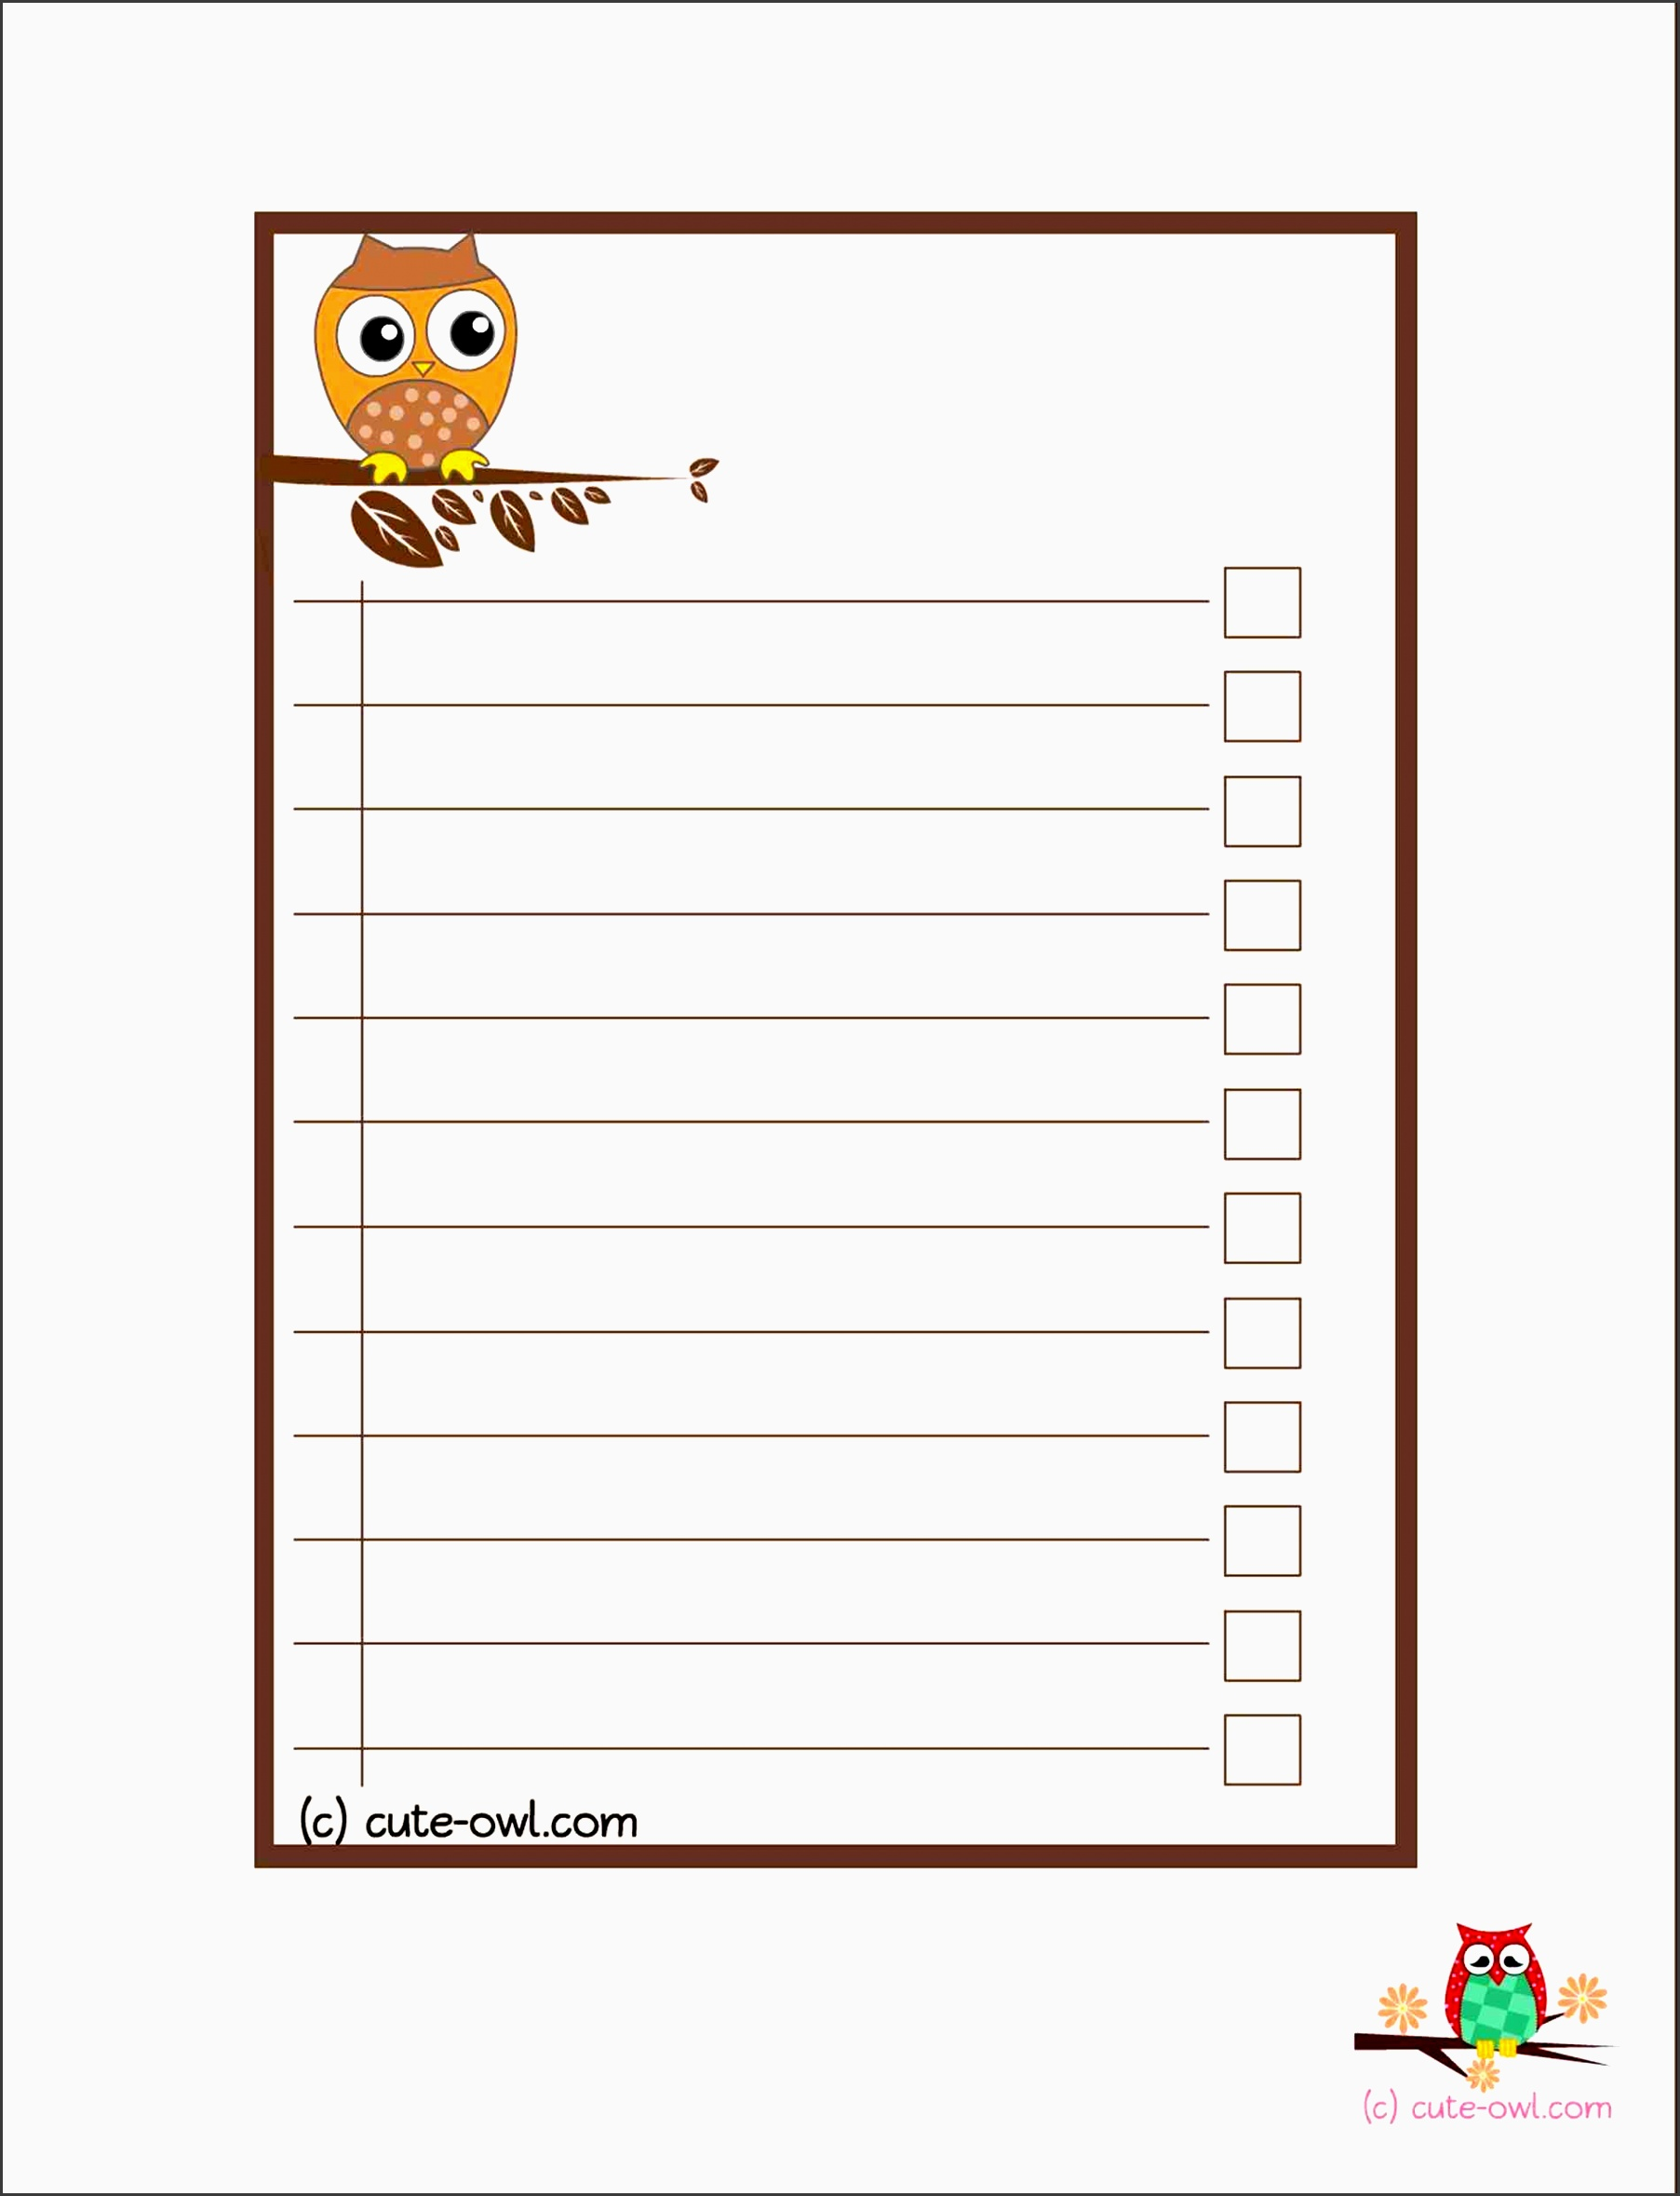 bridal party bus image photo baby shower checklist planner bridal shower party bus image baby planner